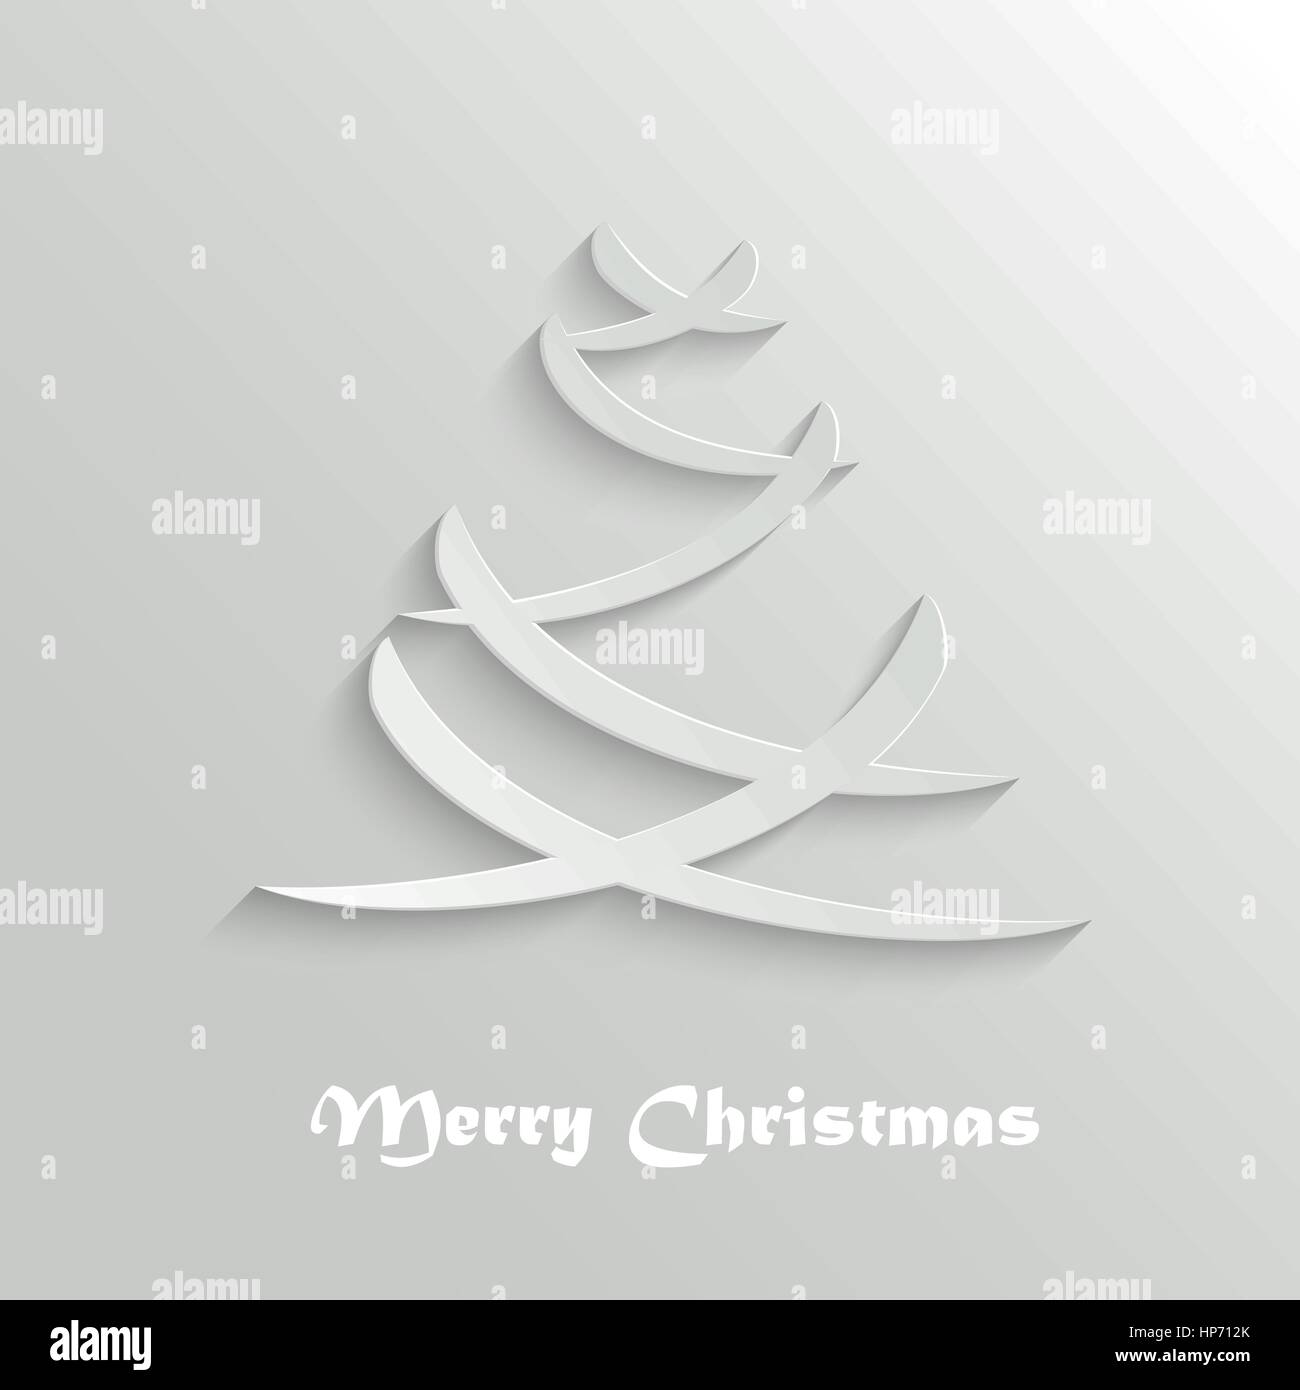 Abstract Modern Christmas Tree Background, Greeting Card Design ...